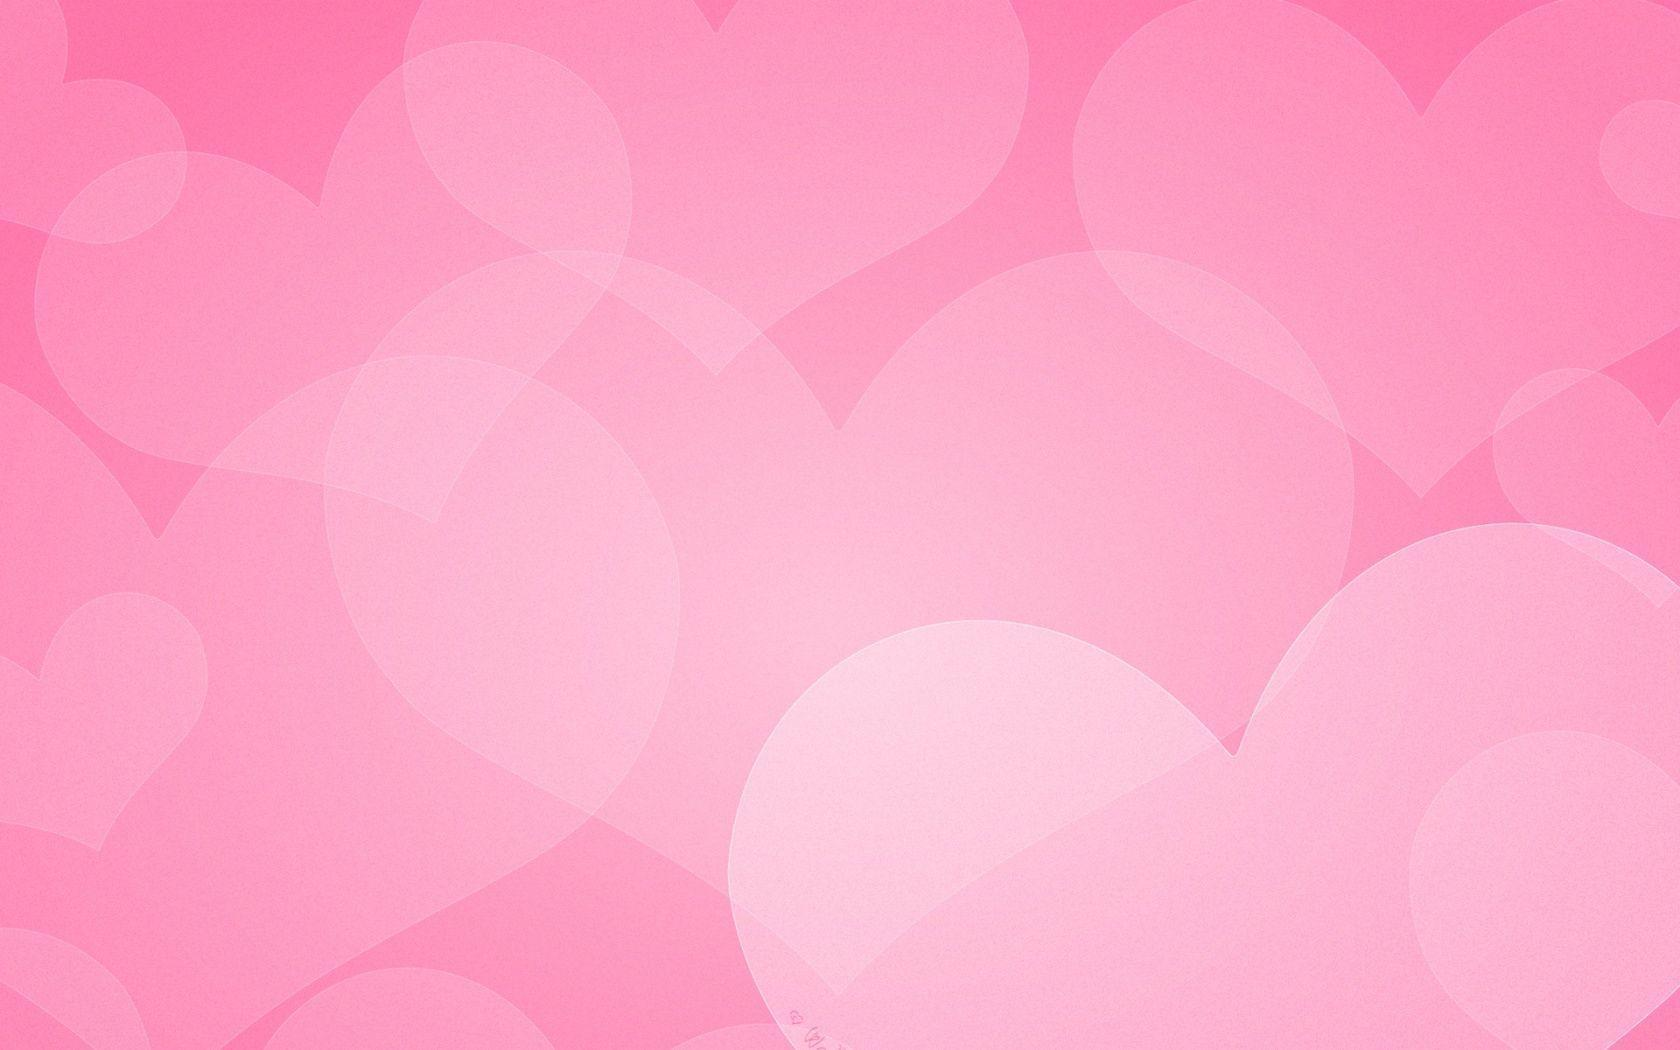 pink heart wallpaper